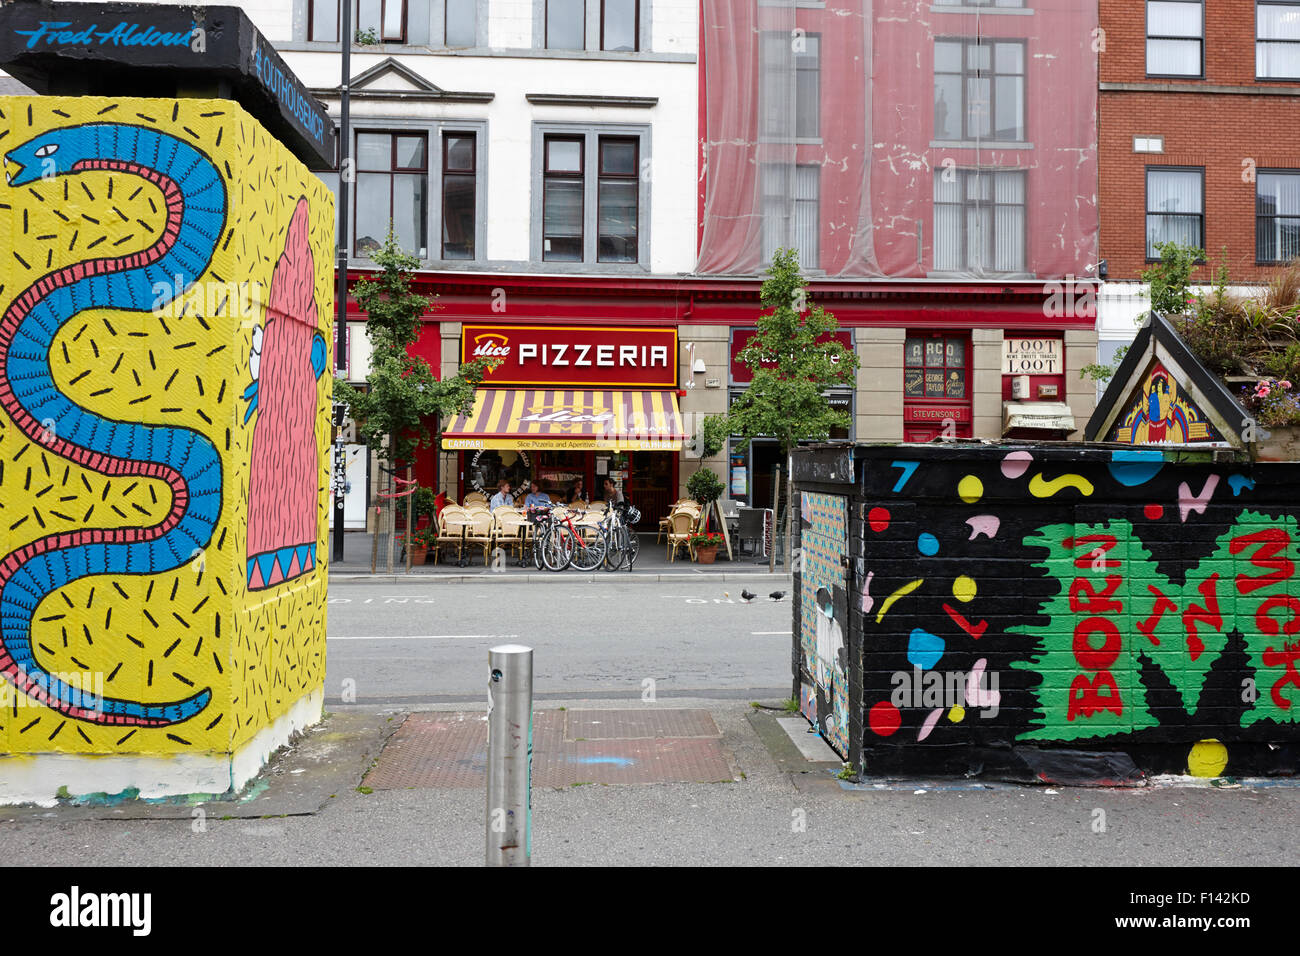 artwork in stephenson square Northern quarter Manchester uk - Stock Image